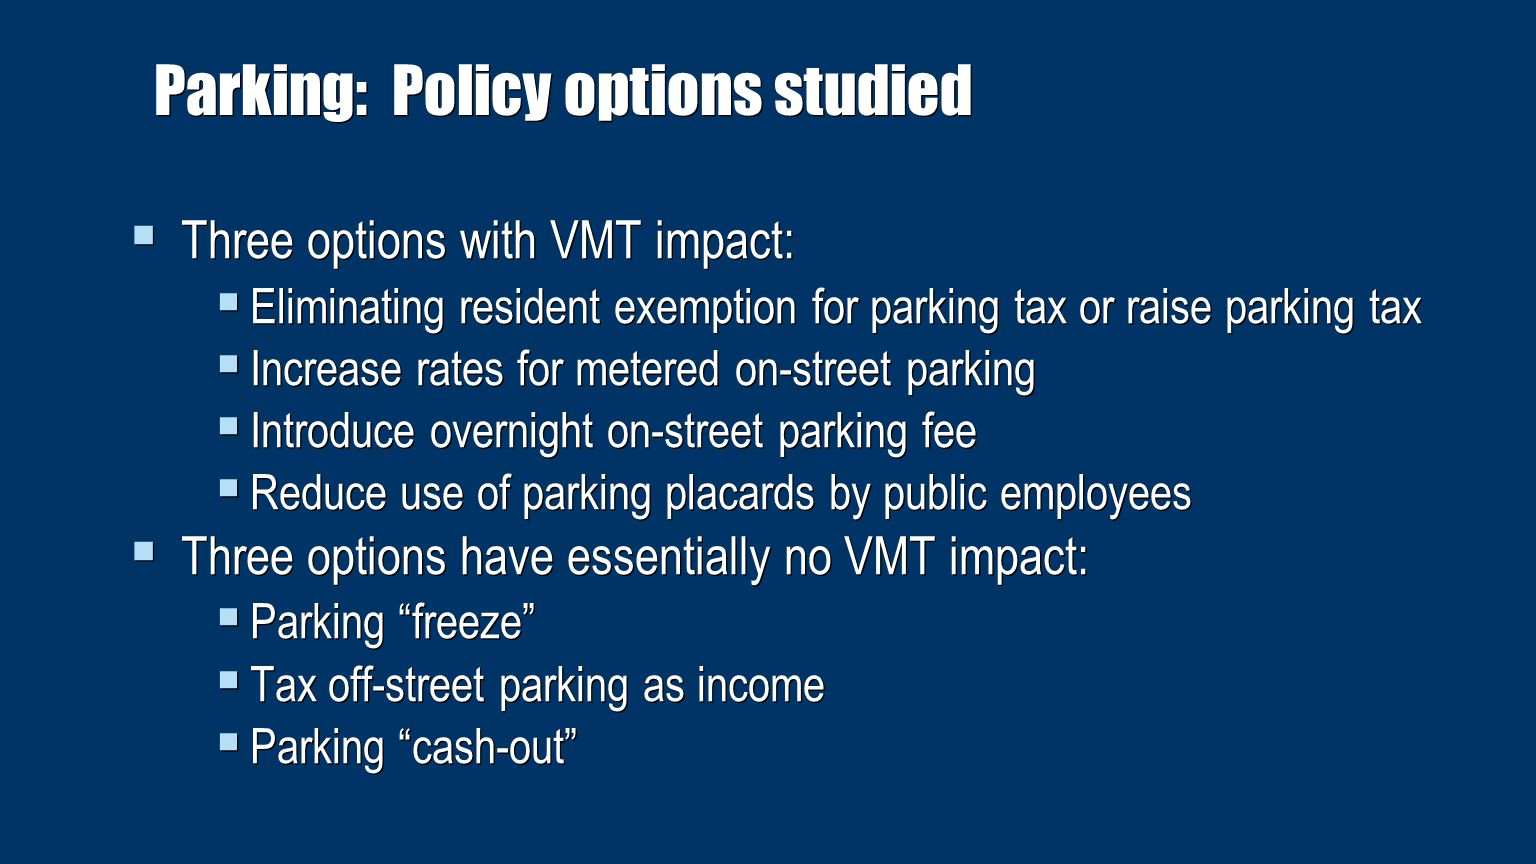 Parking: Eliminate Manhattan resident parking tax exemption  Option: Charge Manhattan residents the same parking tax (18⅜%) as other parkers.